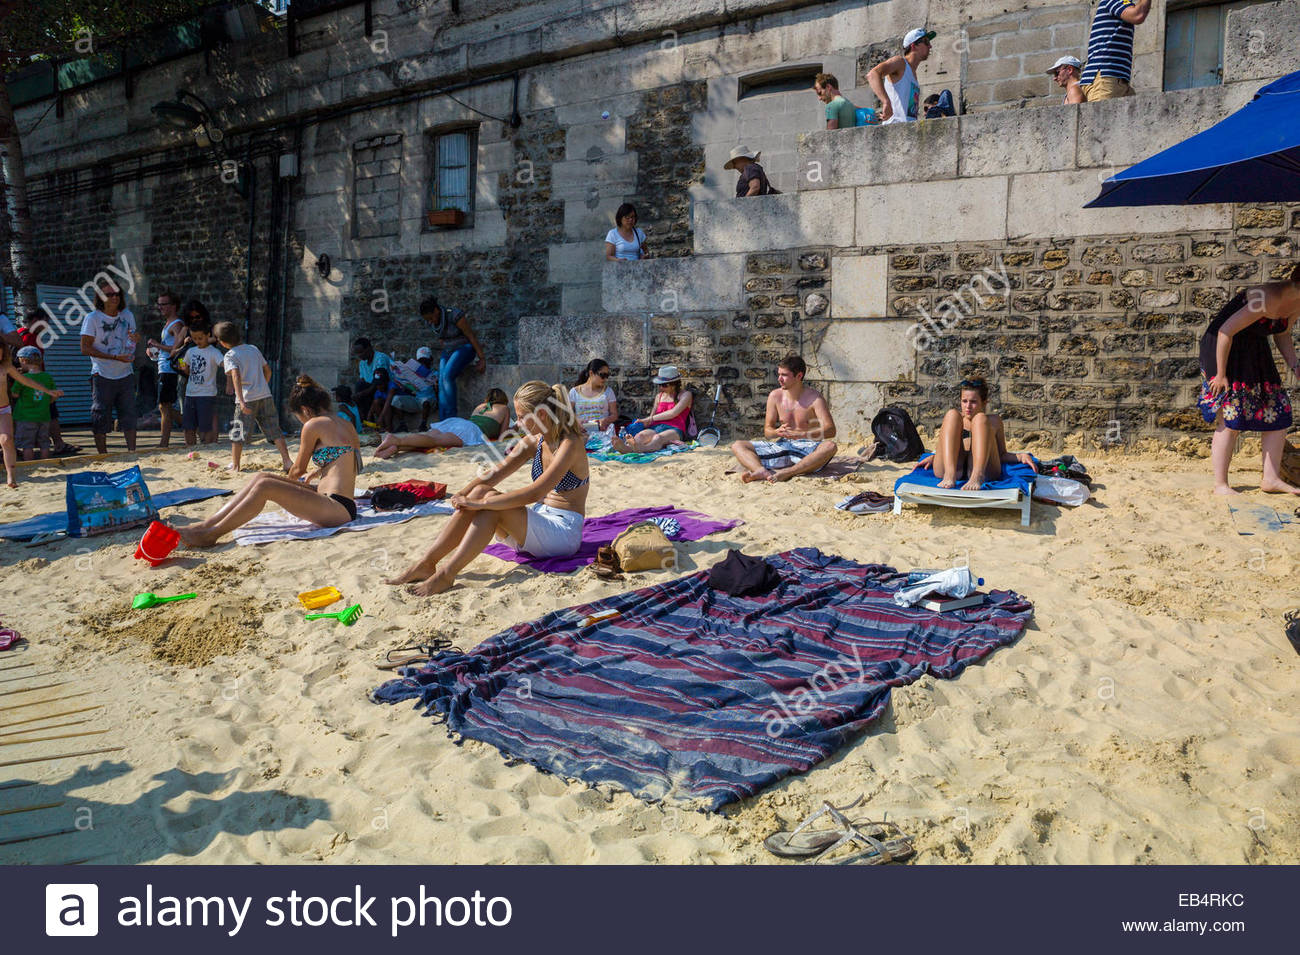 Parisians and tourists at Paris Plage, an artificial, temporary beach on the bank of the Seine River. Stock Photo